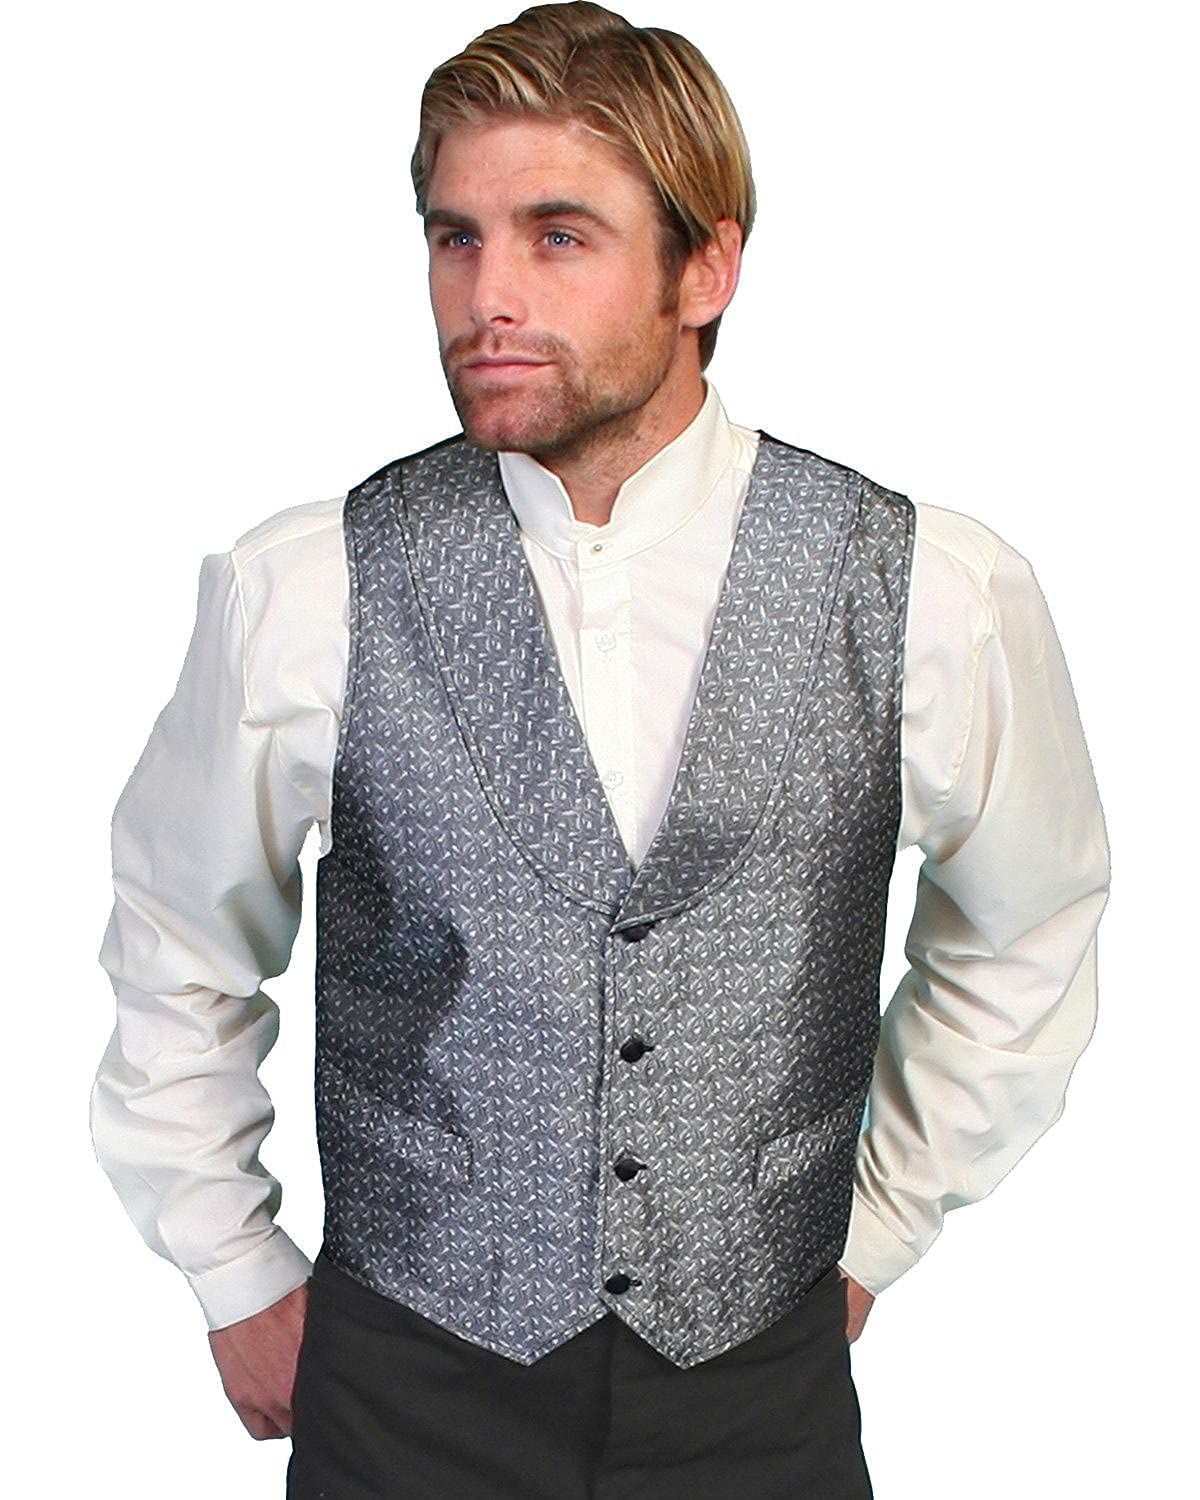 Steampunk Clothing- Men's Rangewear By Scully Mens Rangewear Silver Spring Vest Big And Tall - Rw166x Sil $55.05 AT vintagedancer.com